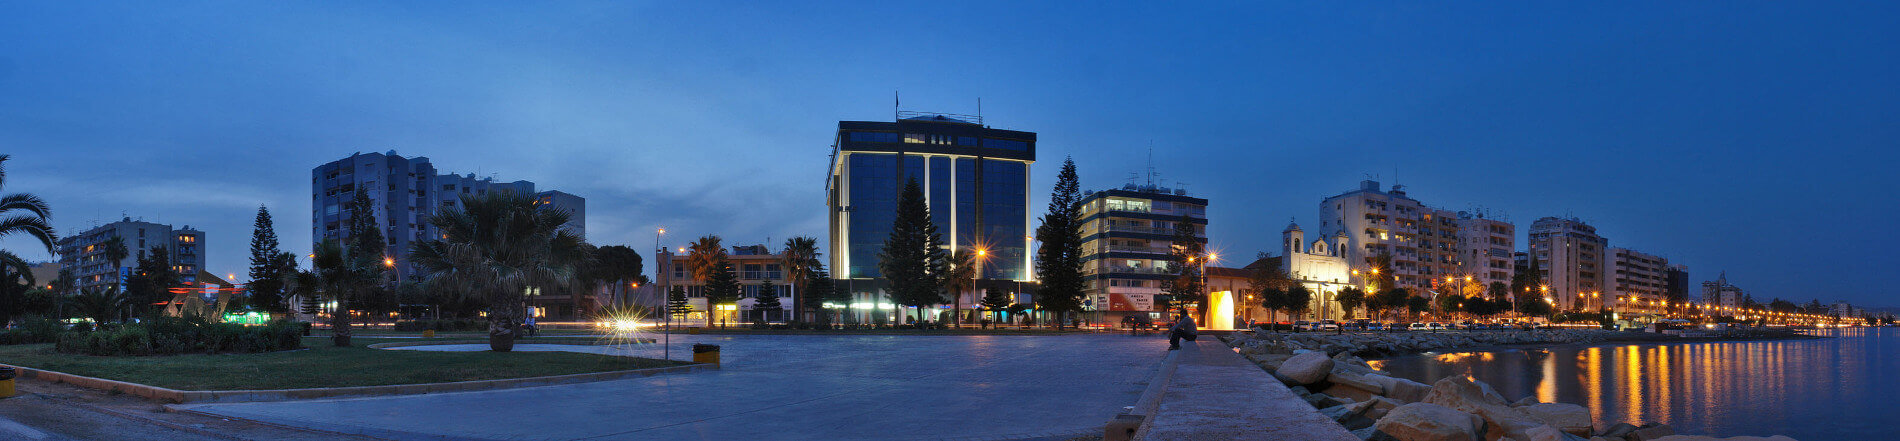 Cyprus Limassol seaside with business buildings